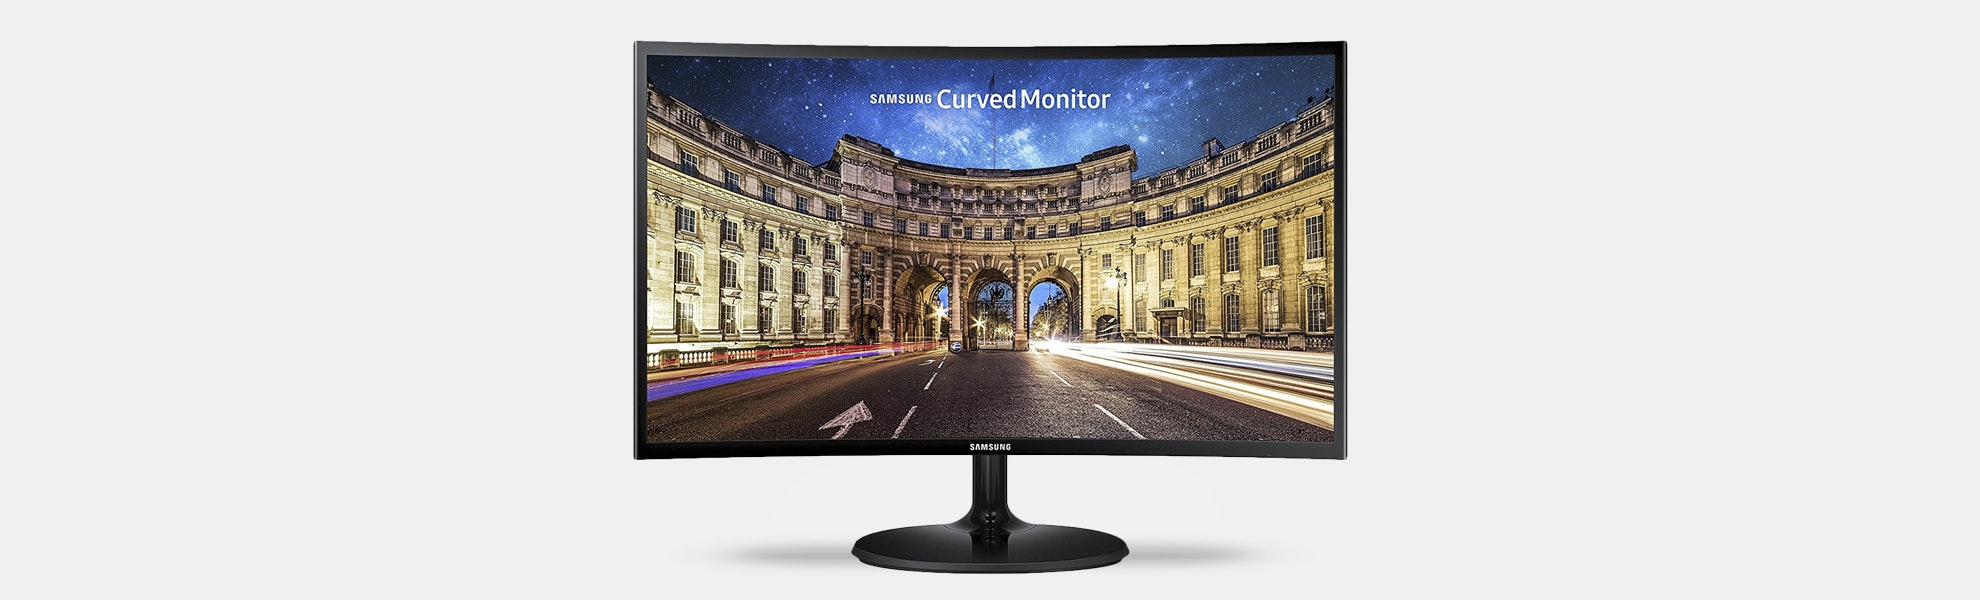 "Samsung 24"" CF390 Curved LED Monitor"